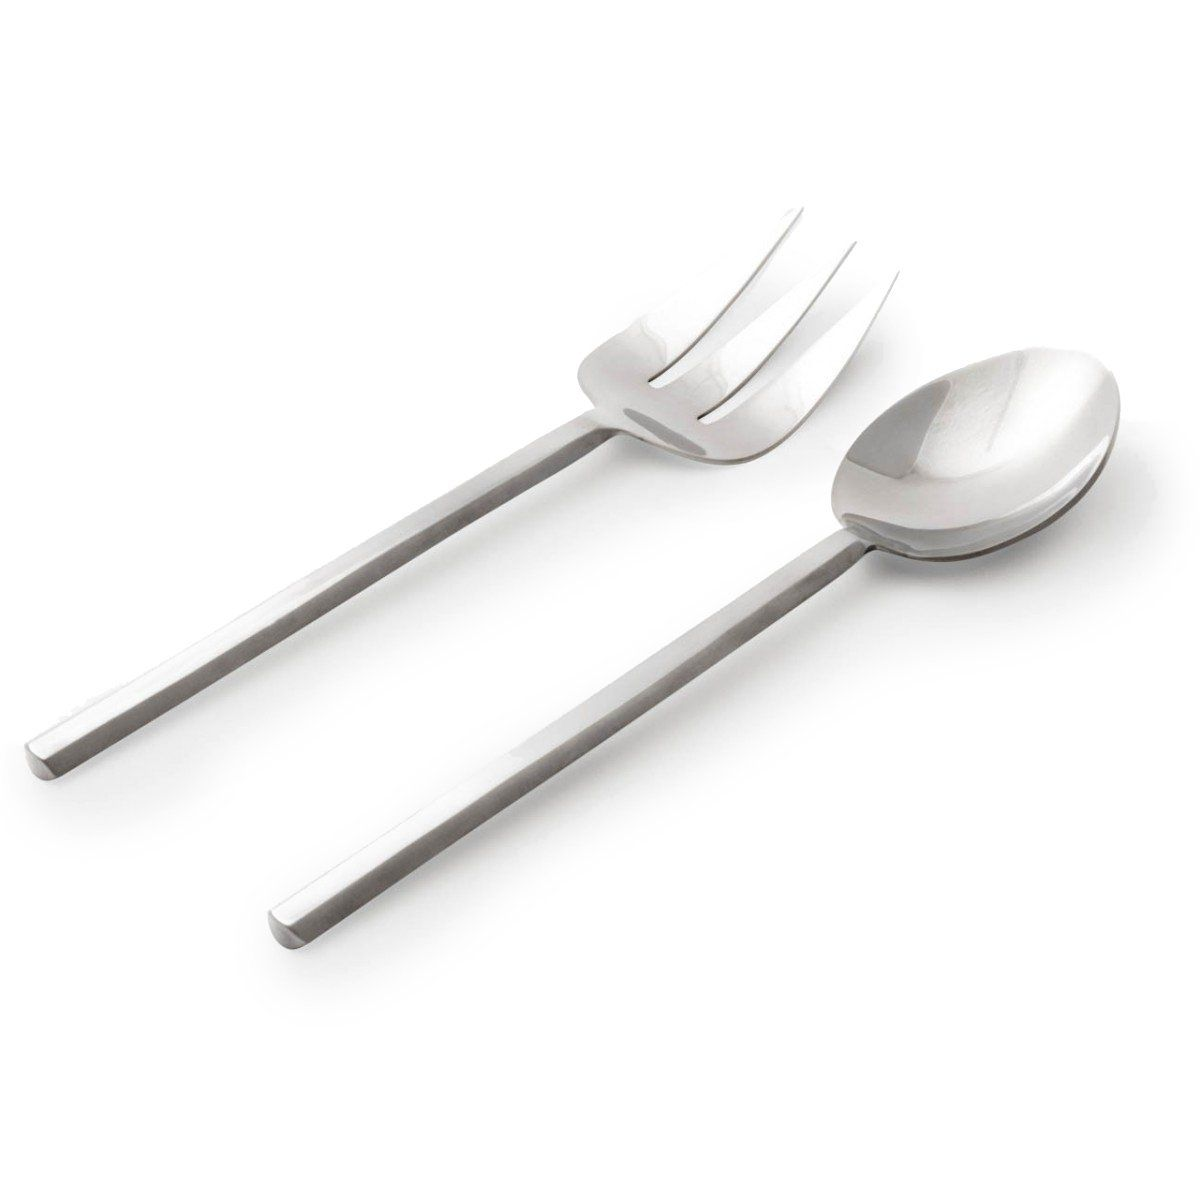 Make moves toward a very polished look when you set a table with this refined stainless steel collection, featuring clean lines in silver. Finish: Polished silver Material: Stainless Steel Dishwasher Safe Imported Serving Spoon: 2